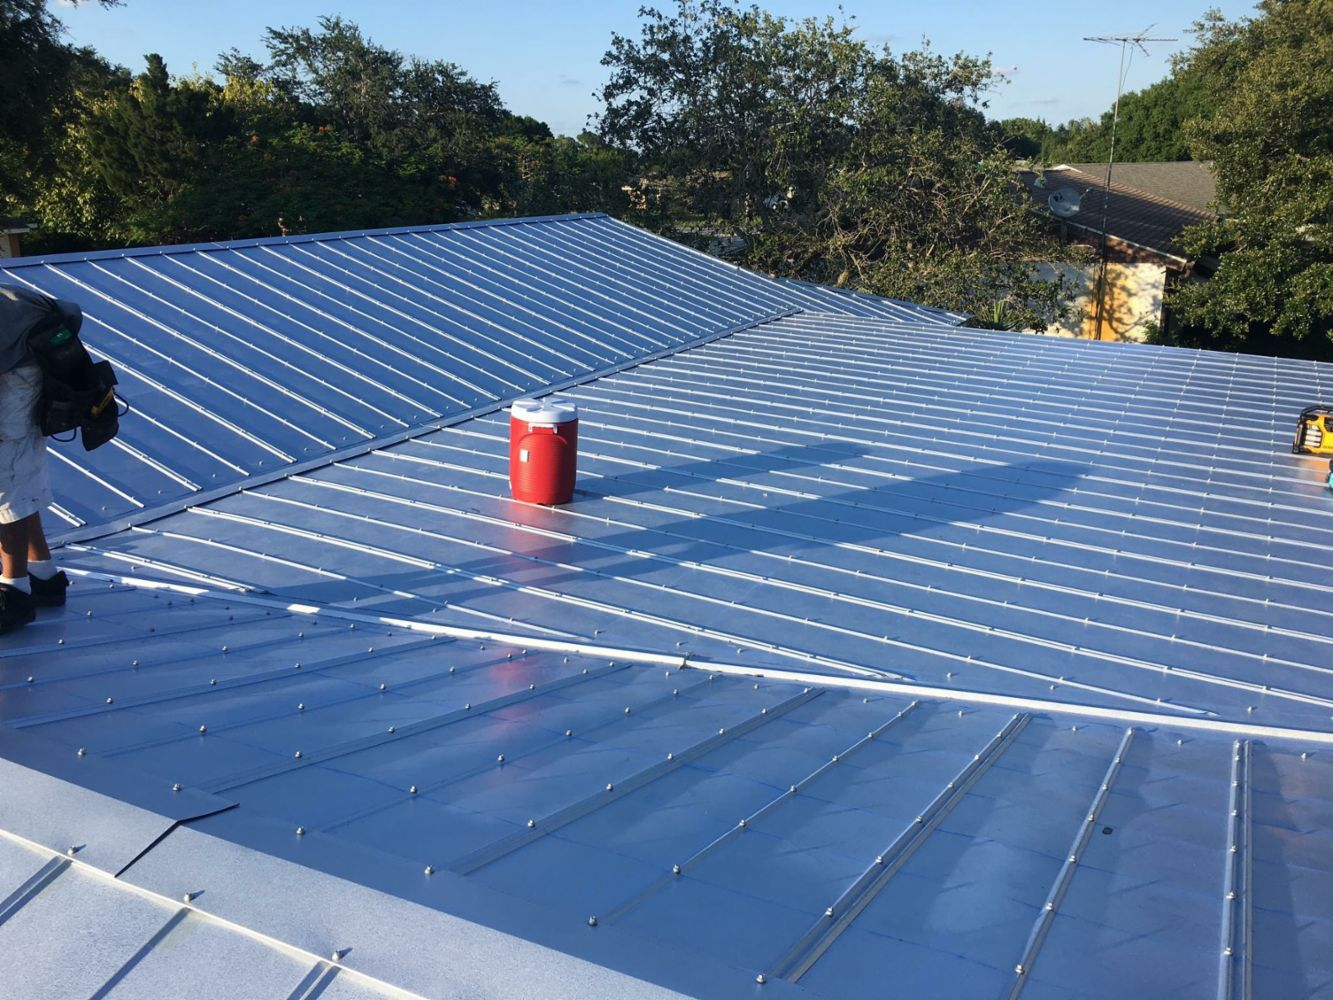 Roofing Contractor Roof Repair In Port Saint Lucie Fl